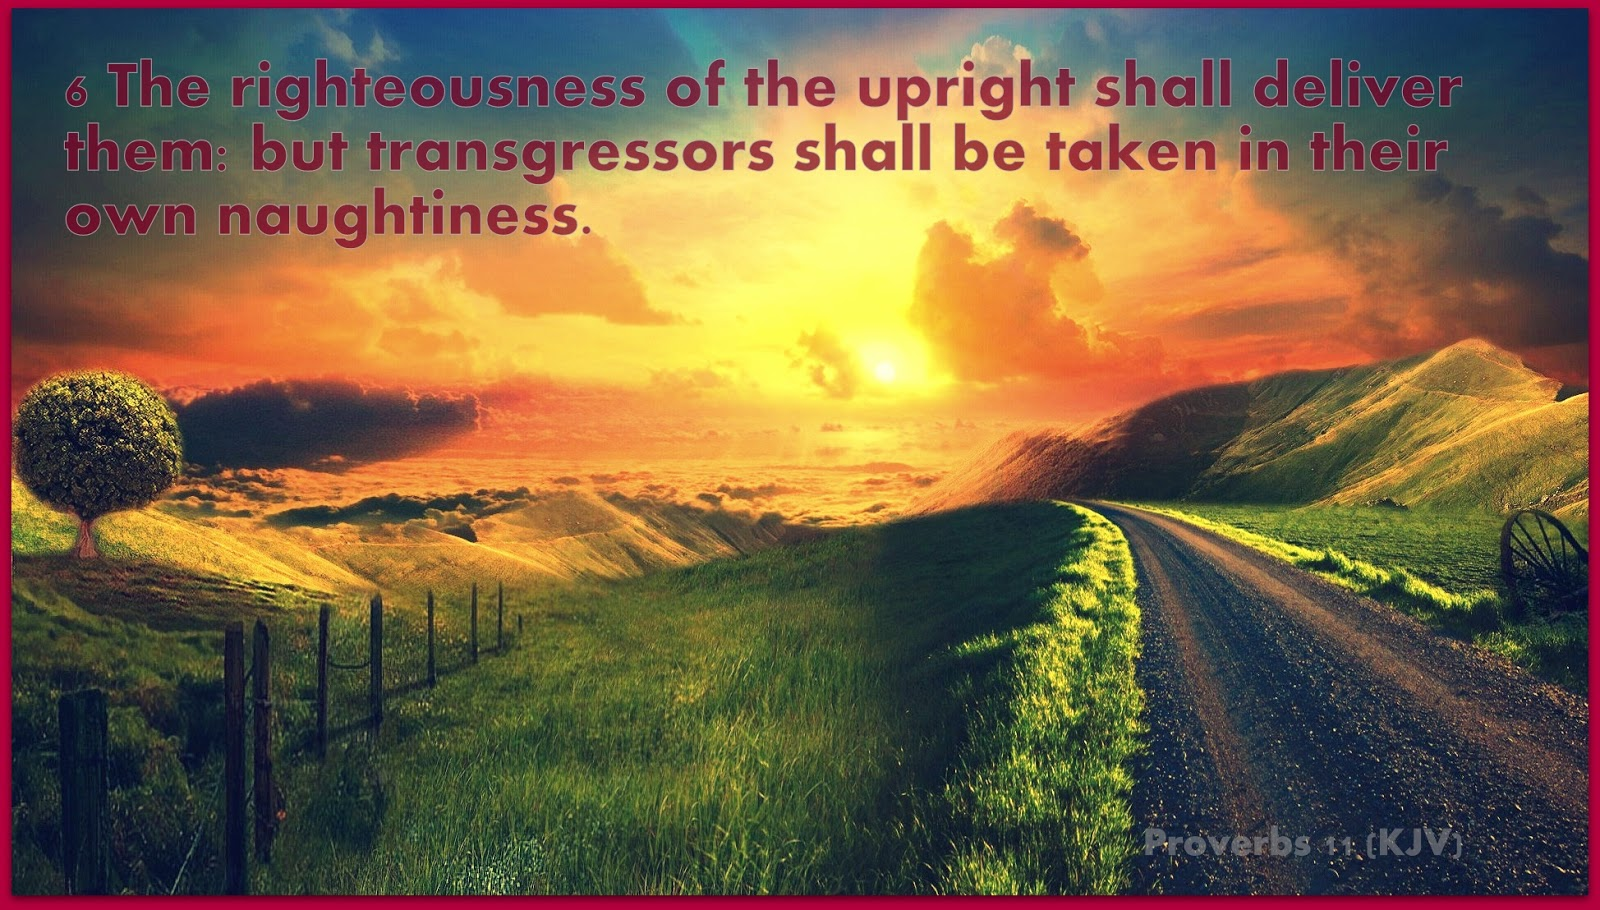 Proverbs 4 Kjv: 17 Best Images About Bible Verses & Quotes On